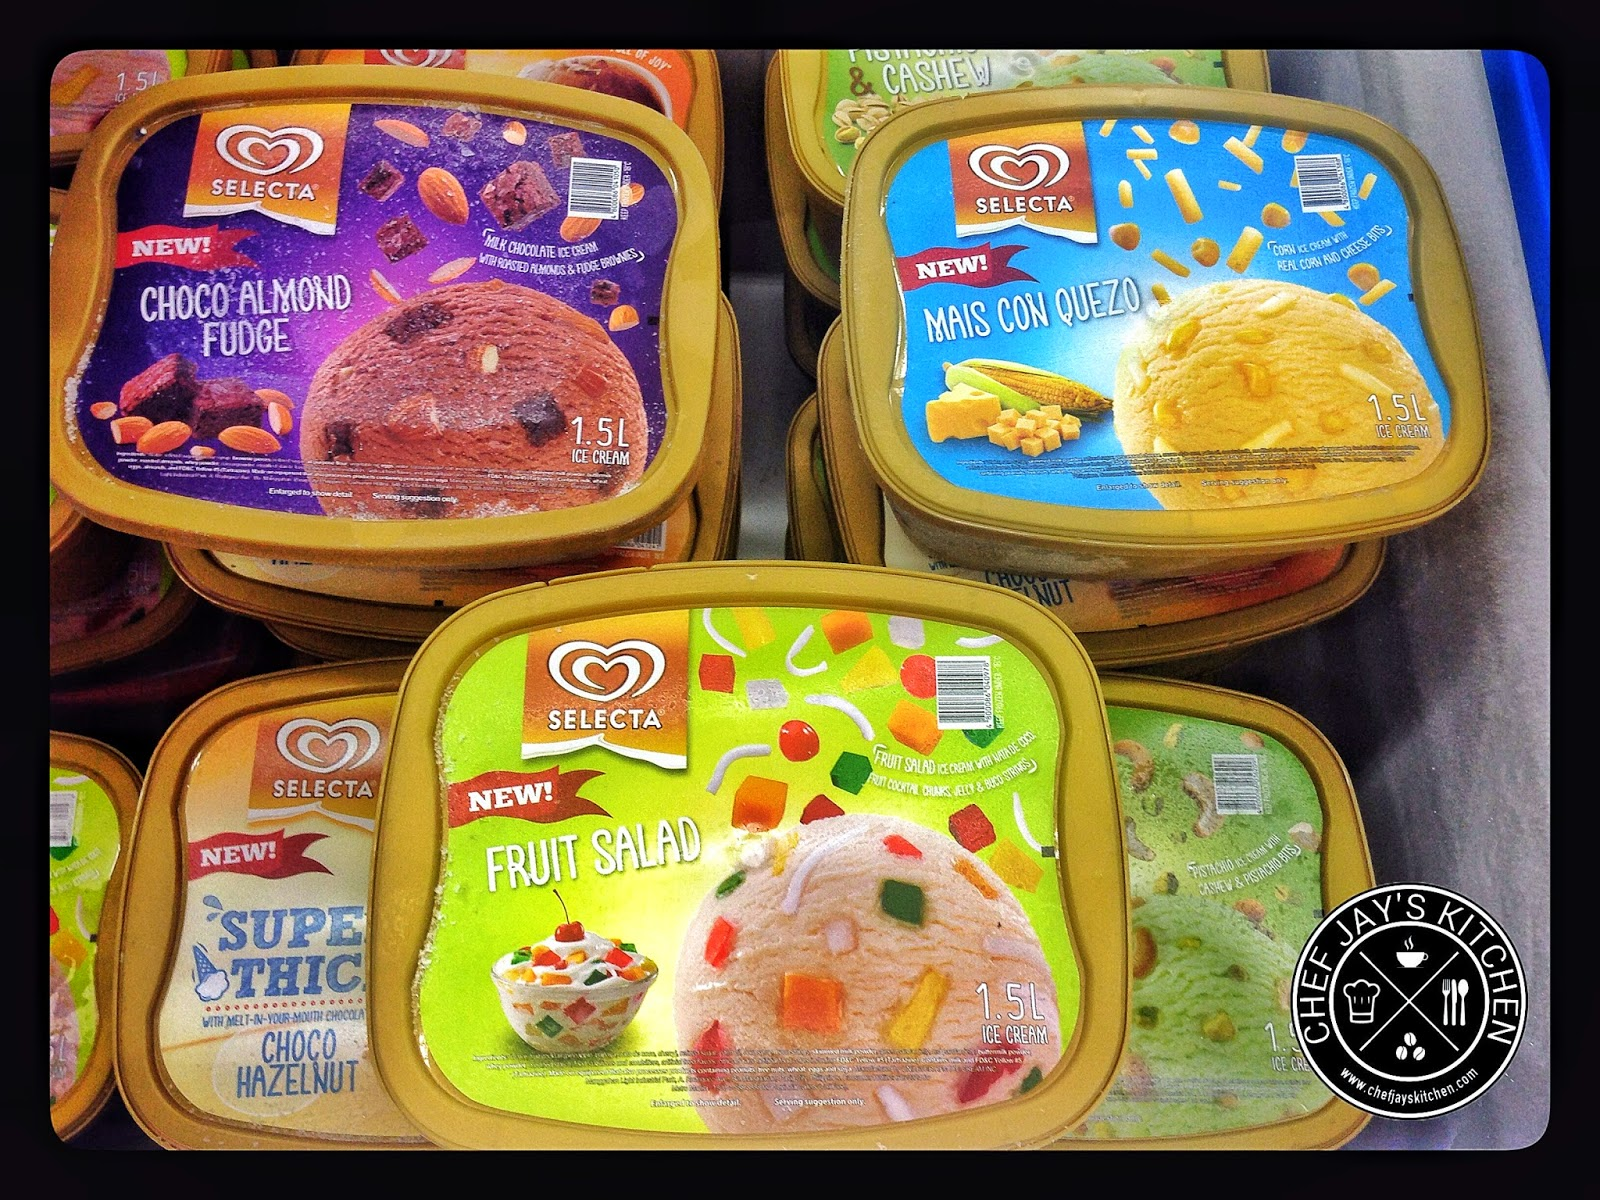 New Selecta Ice Cream Flavors: Mais Con Quezo, Choco Almond Fudge, and Fruit Salad